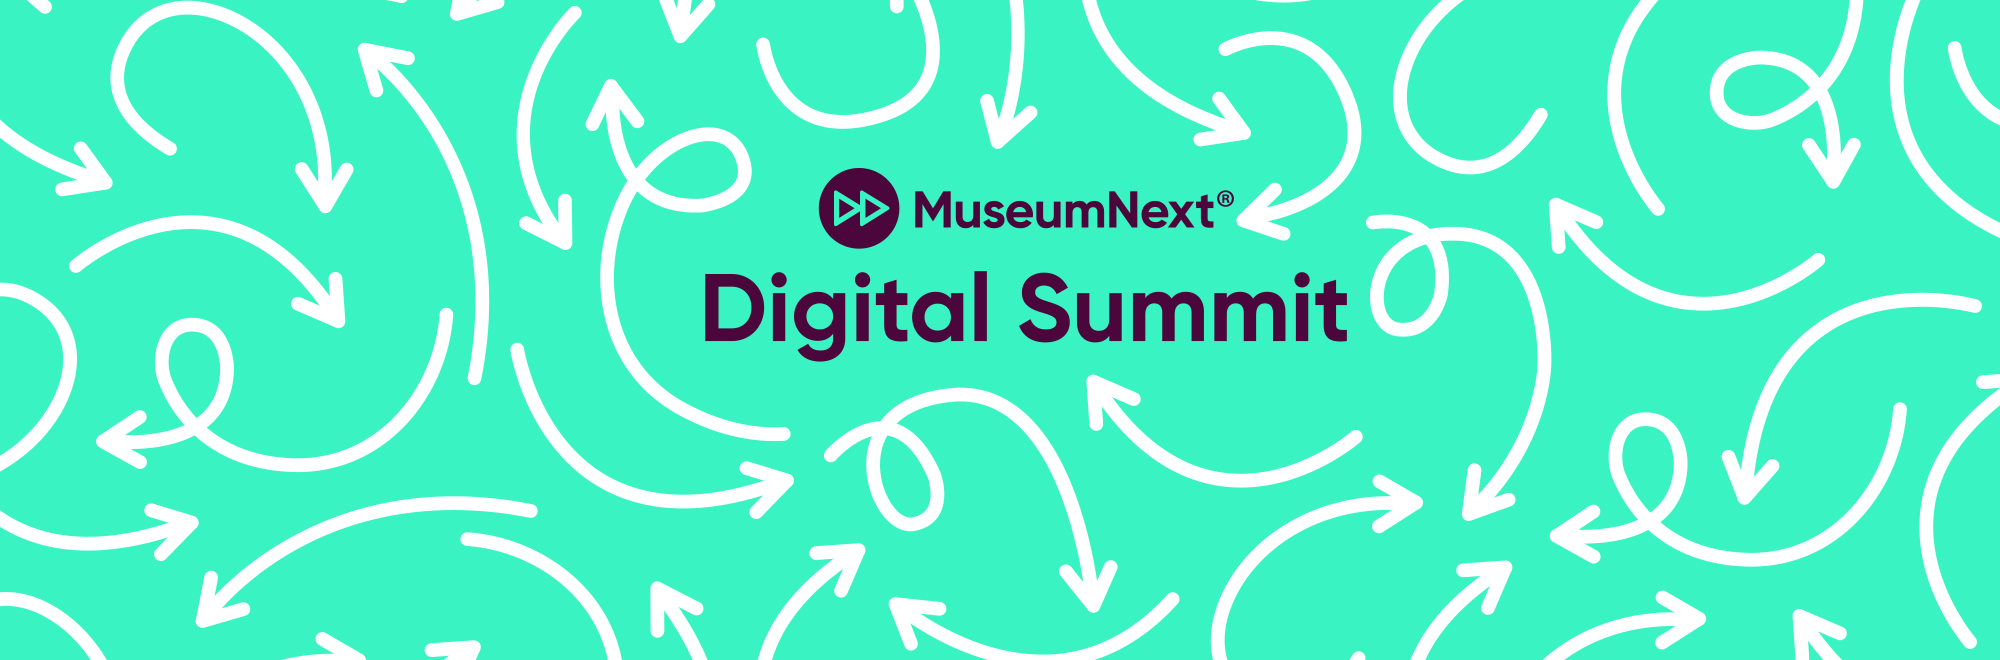 MuseumNext Digital Summit